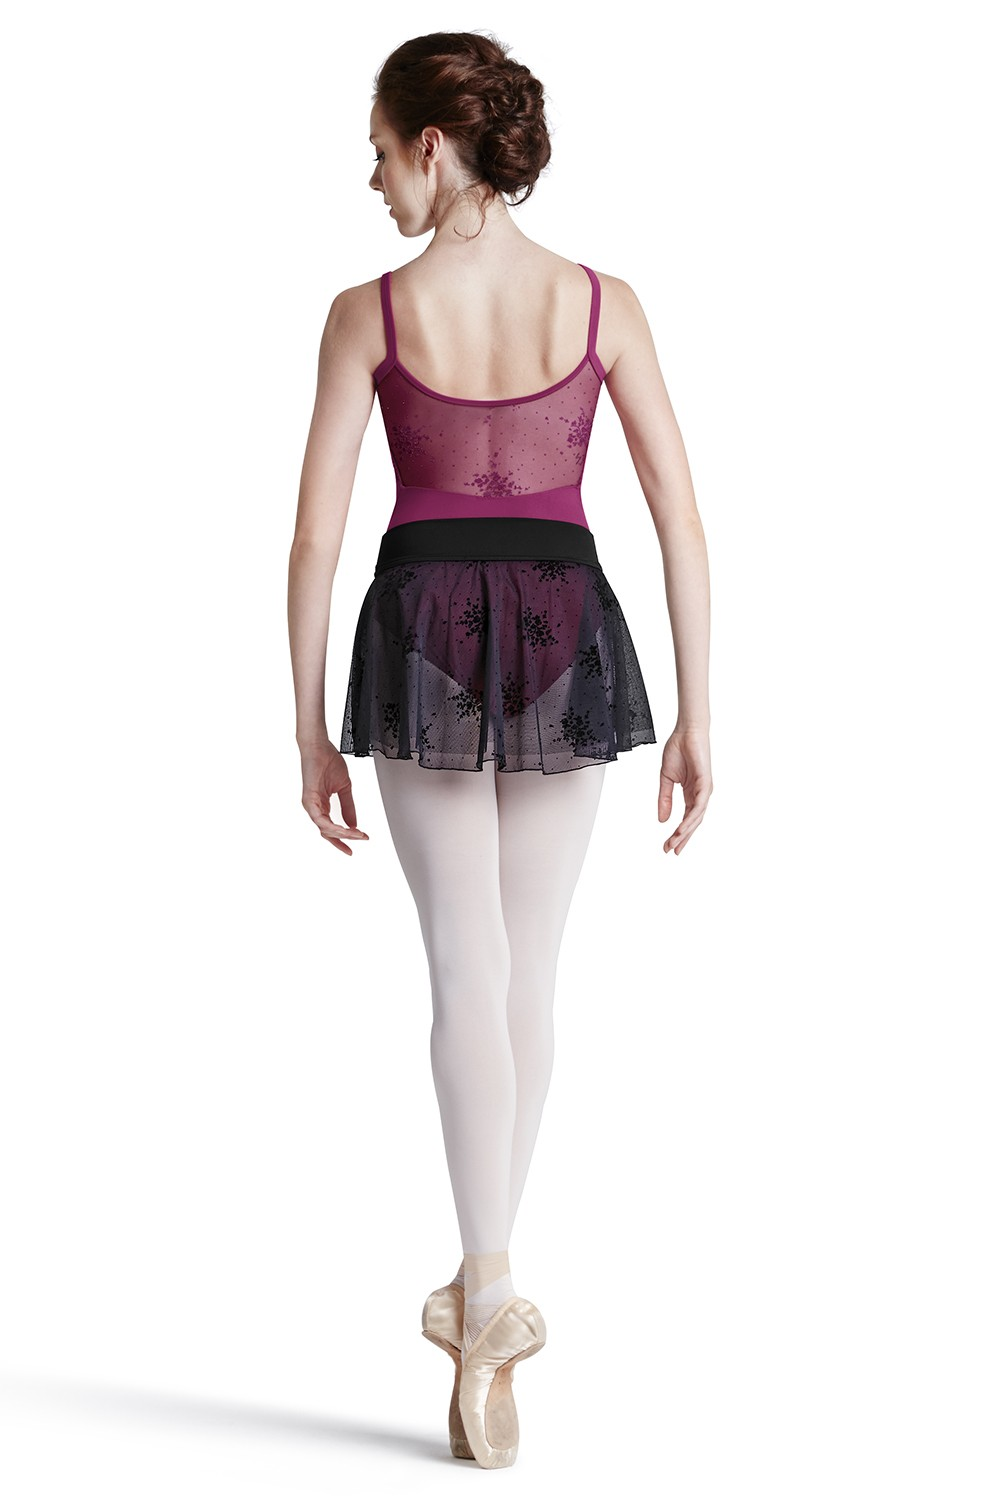 Floral Flk Yoke Leo Women's Dance Leotards